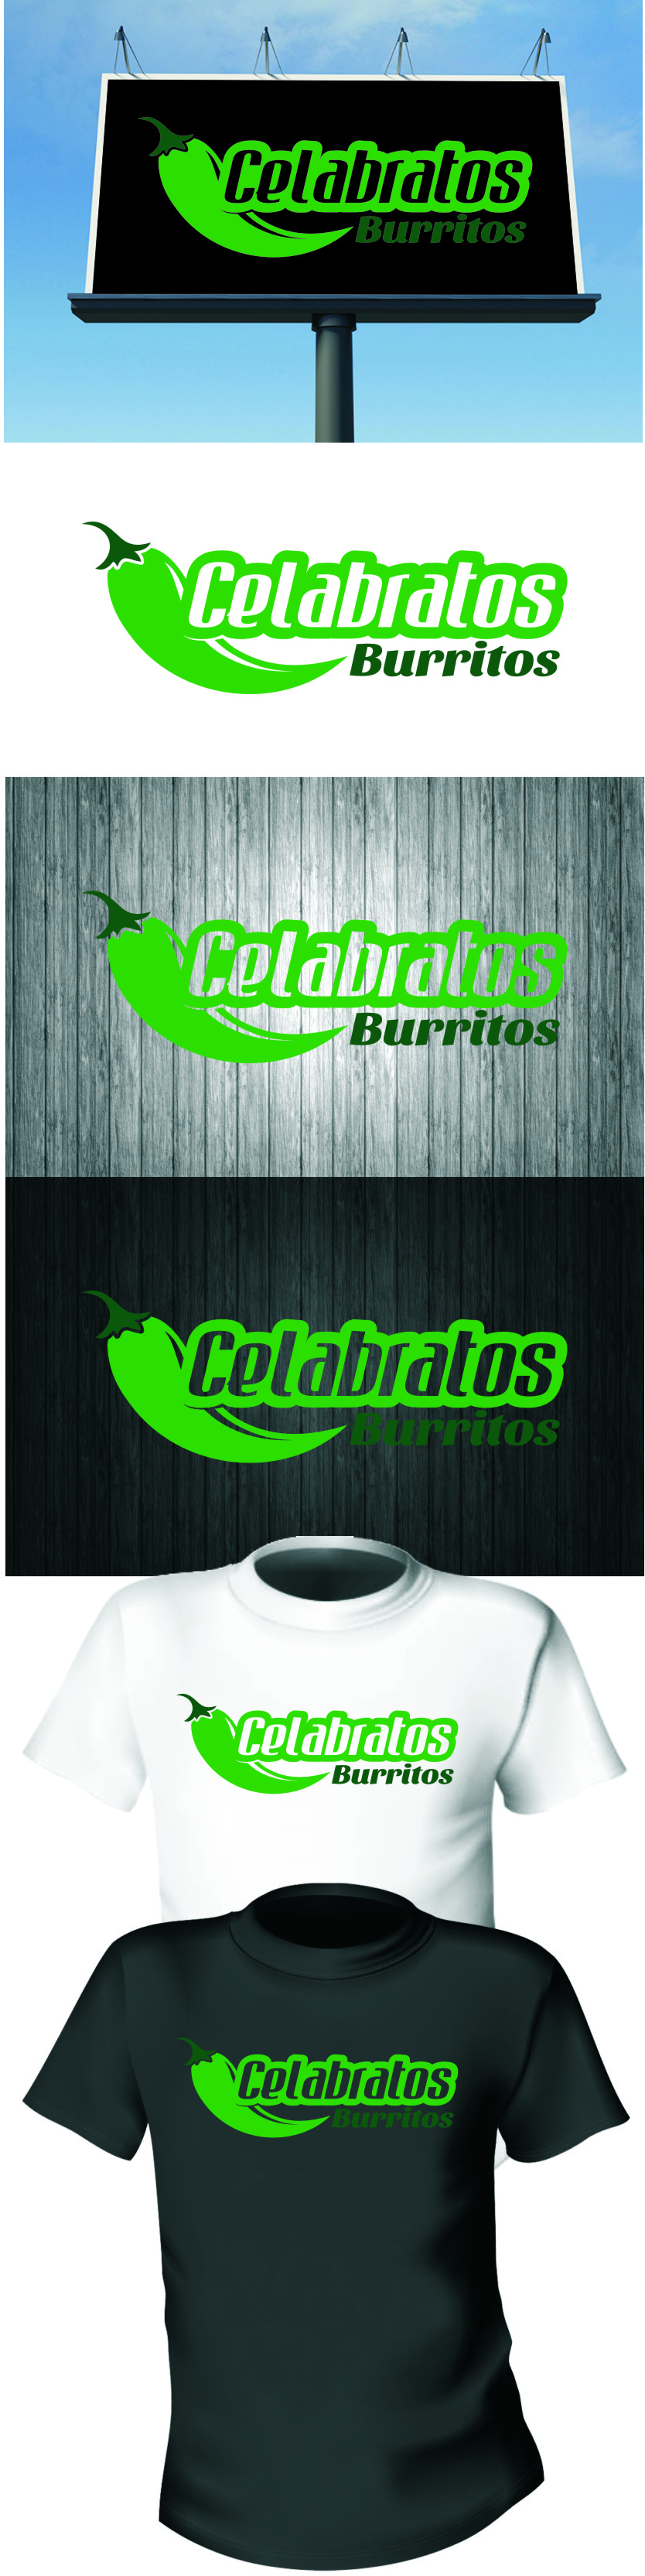 Logo Design by RasYa Muhammad Athaya - Entry No. 98 in the Logo Design Contest Imaginative Logo Design for Celabratos.